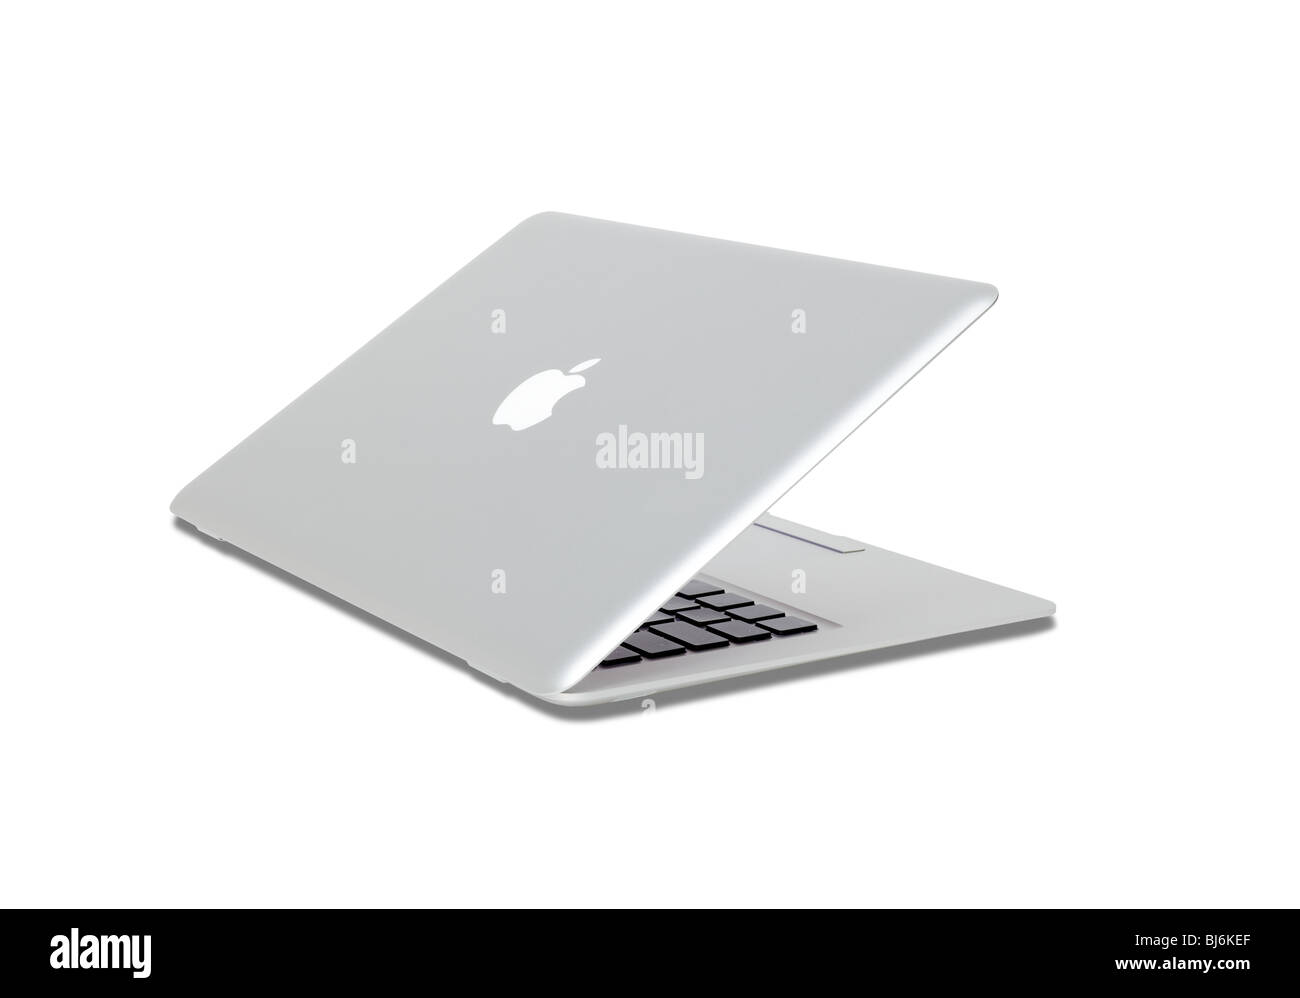 macbook-air-ultra-slim-and-portable-lapt